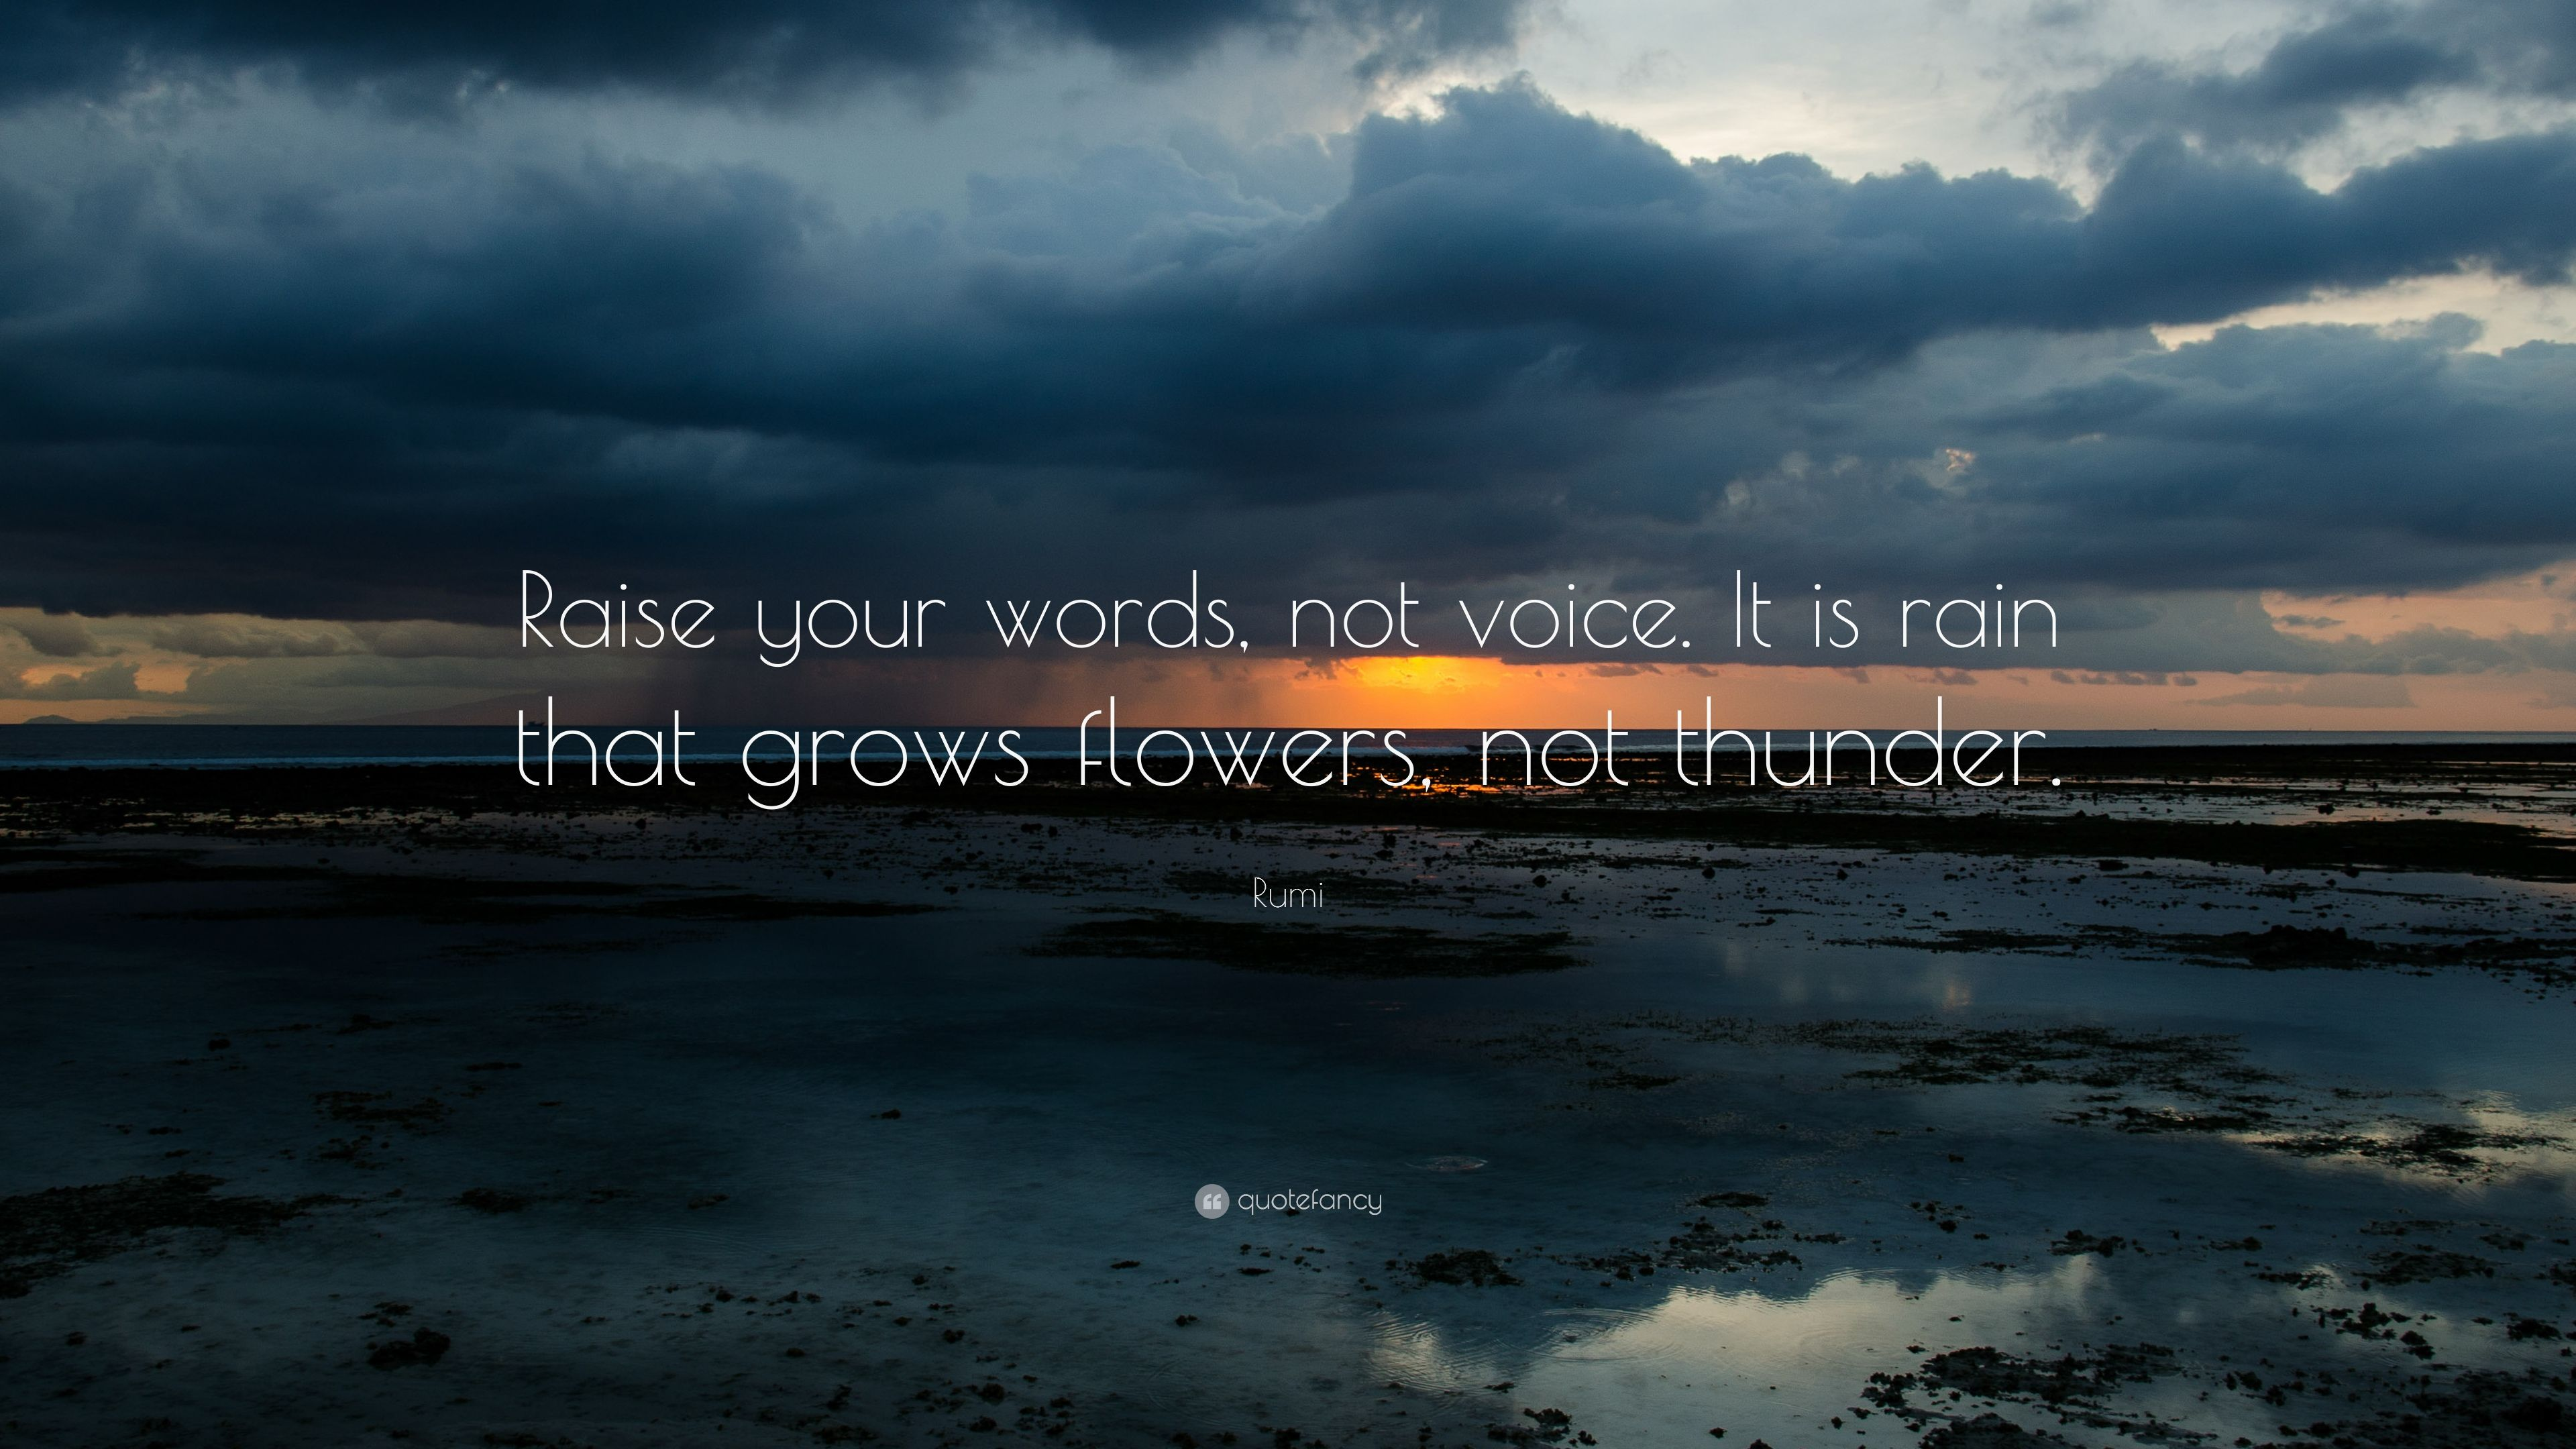 Quotes Rumi Top 25 Most Inspiring Rumi Quotes Click Image To Discover